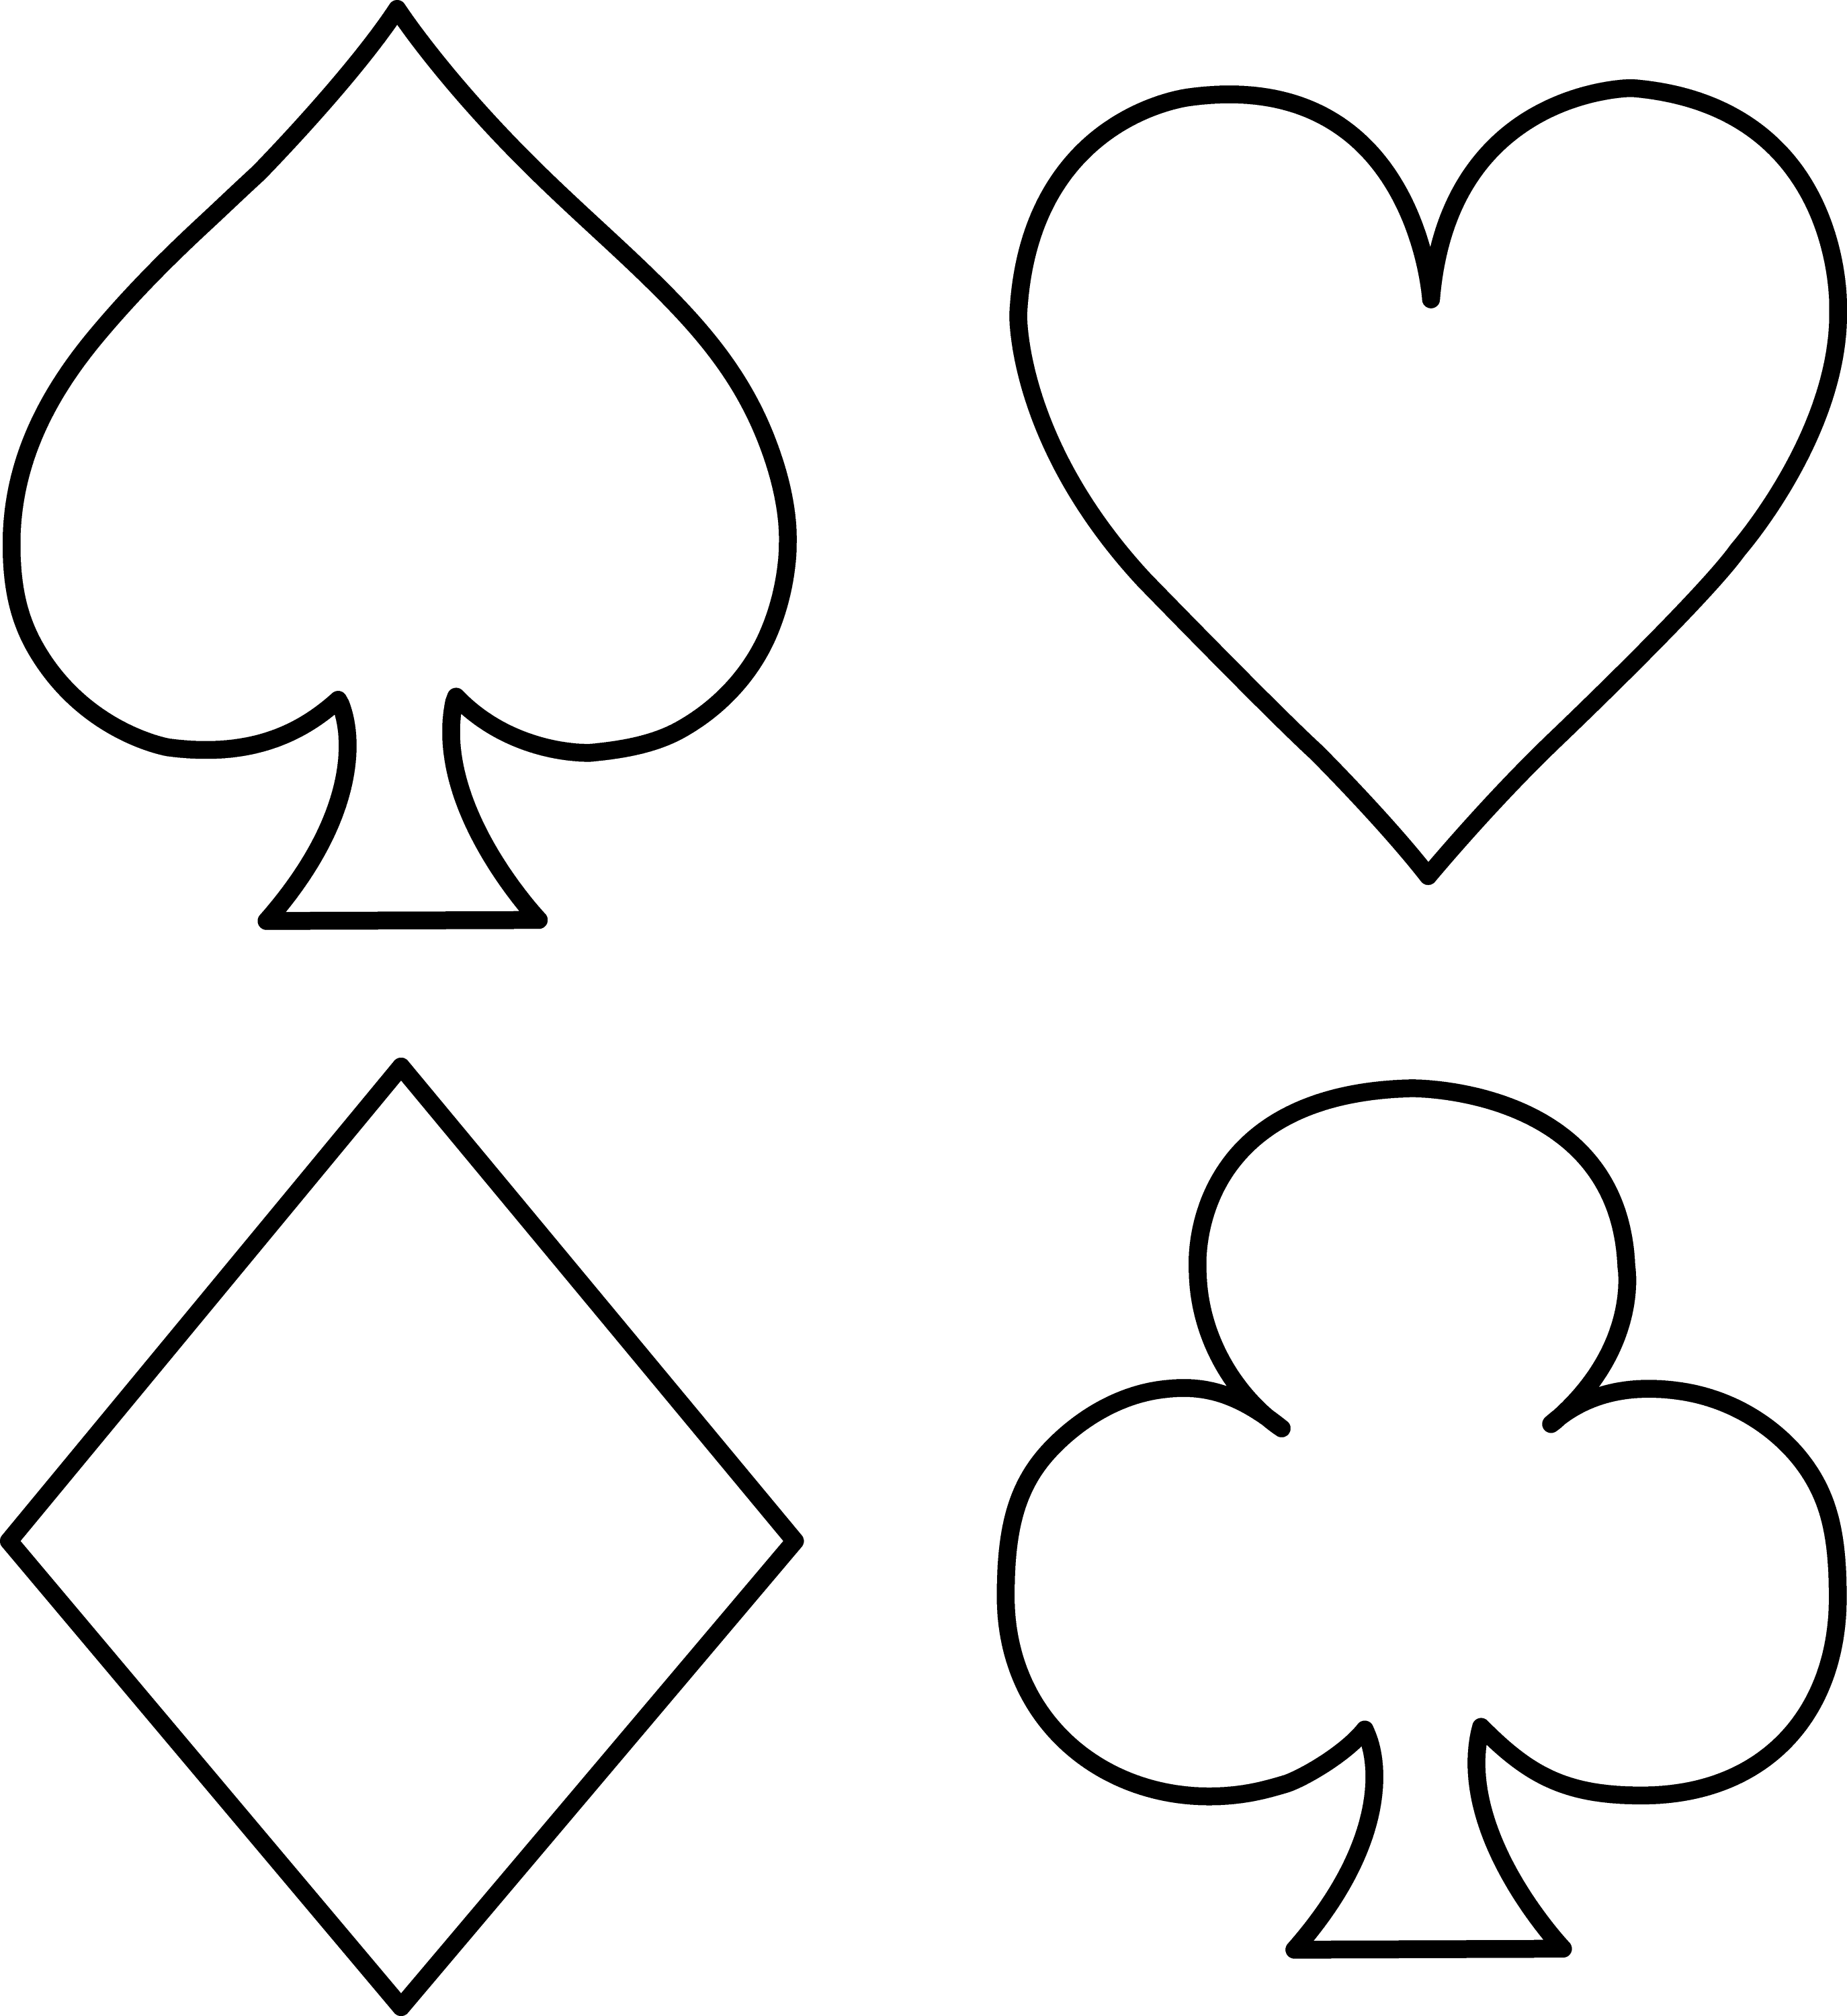 Playing Card Suits Line Art